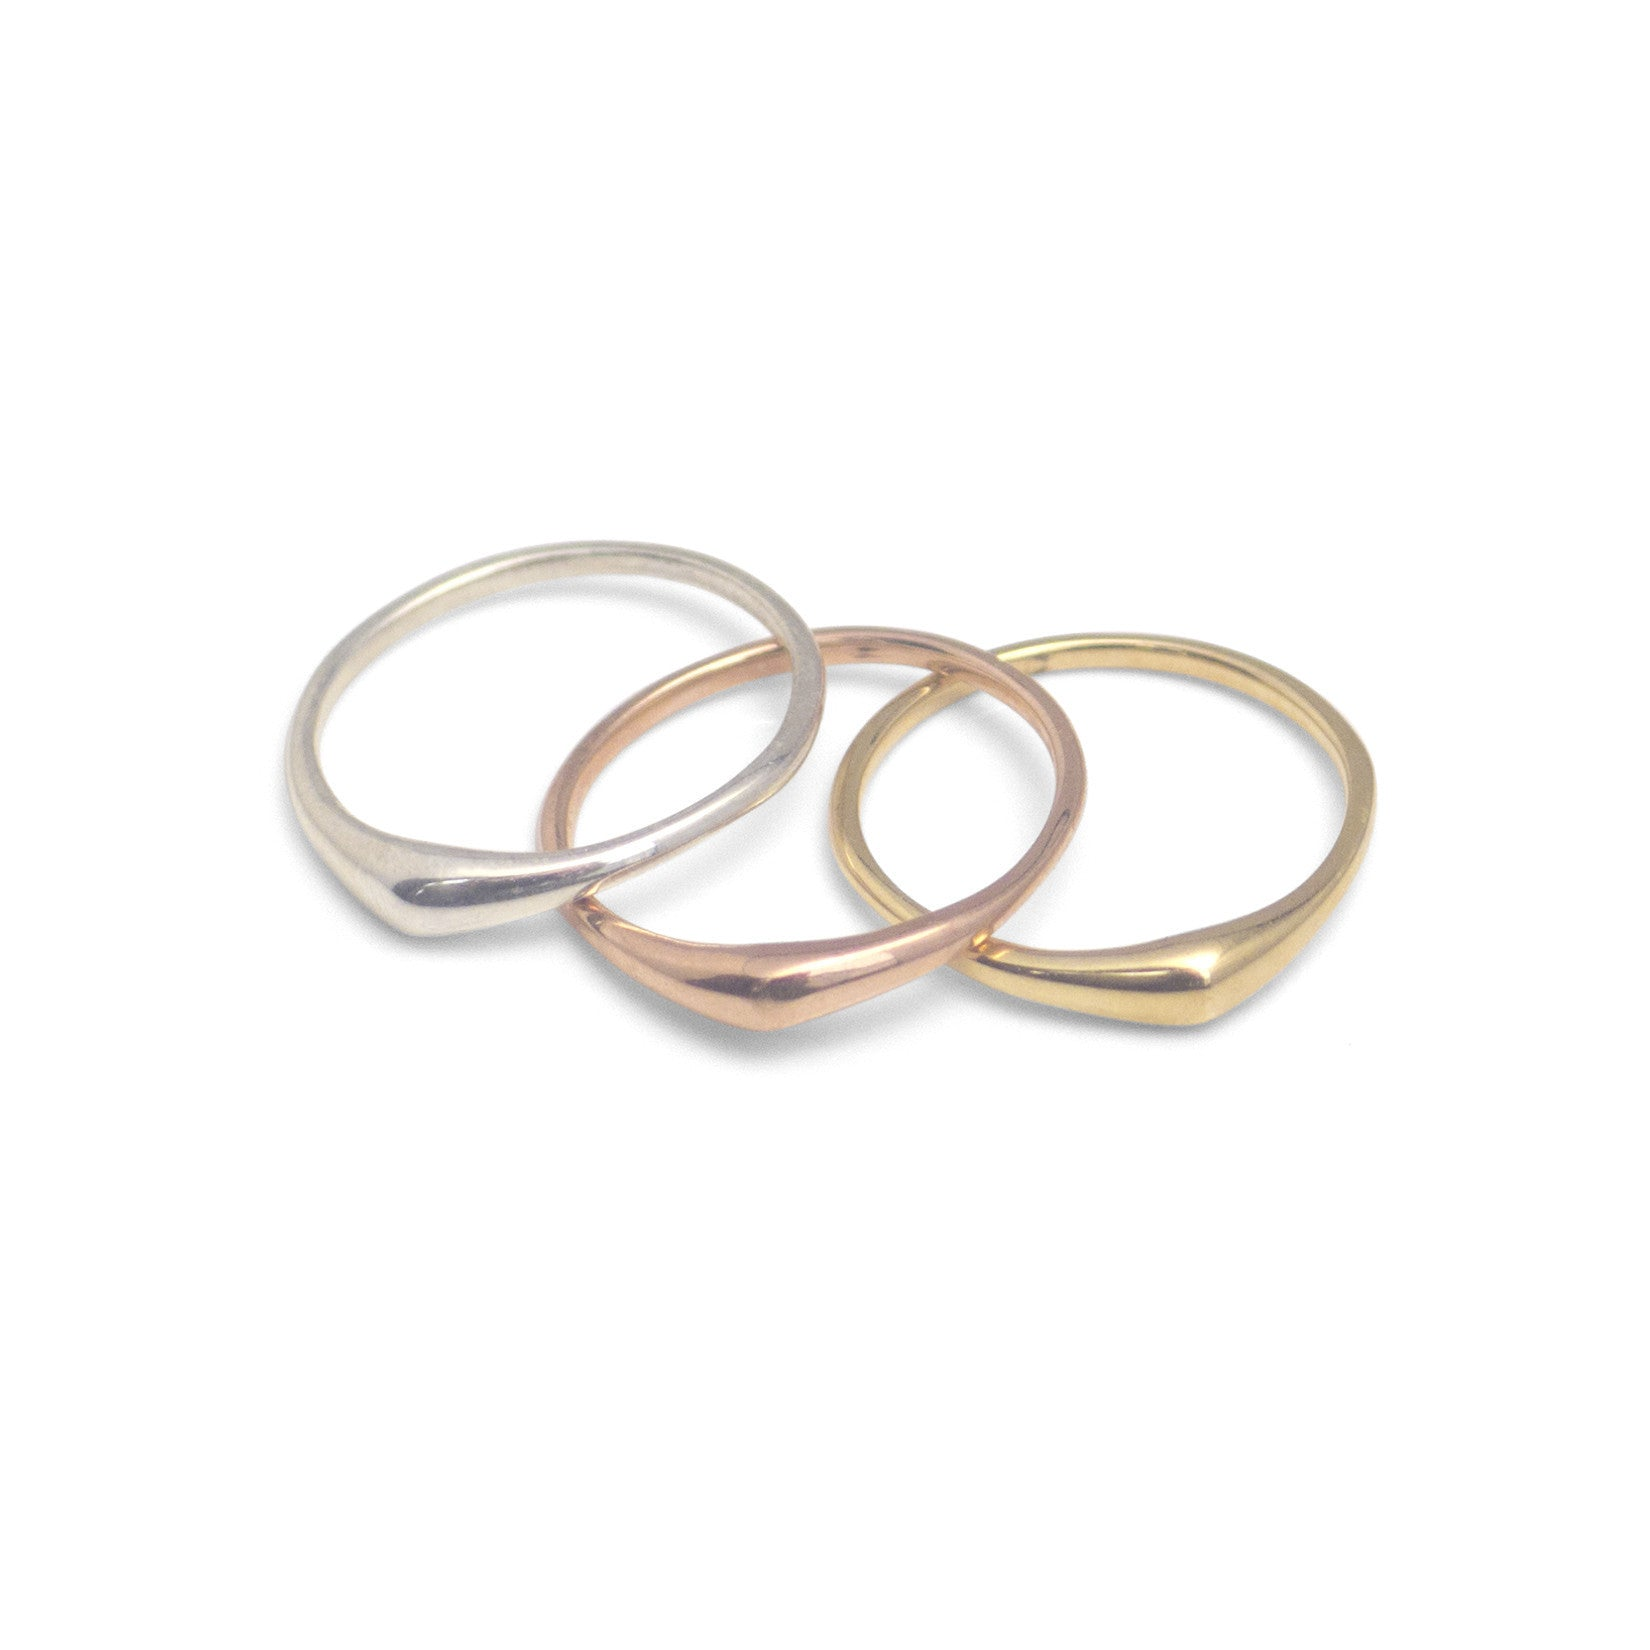 set of three in sterling silver, 14k yellow gold and 14k rose gold / matte / 5 swell stacking rings